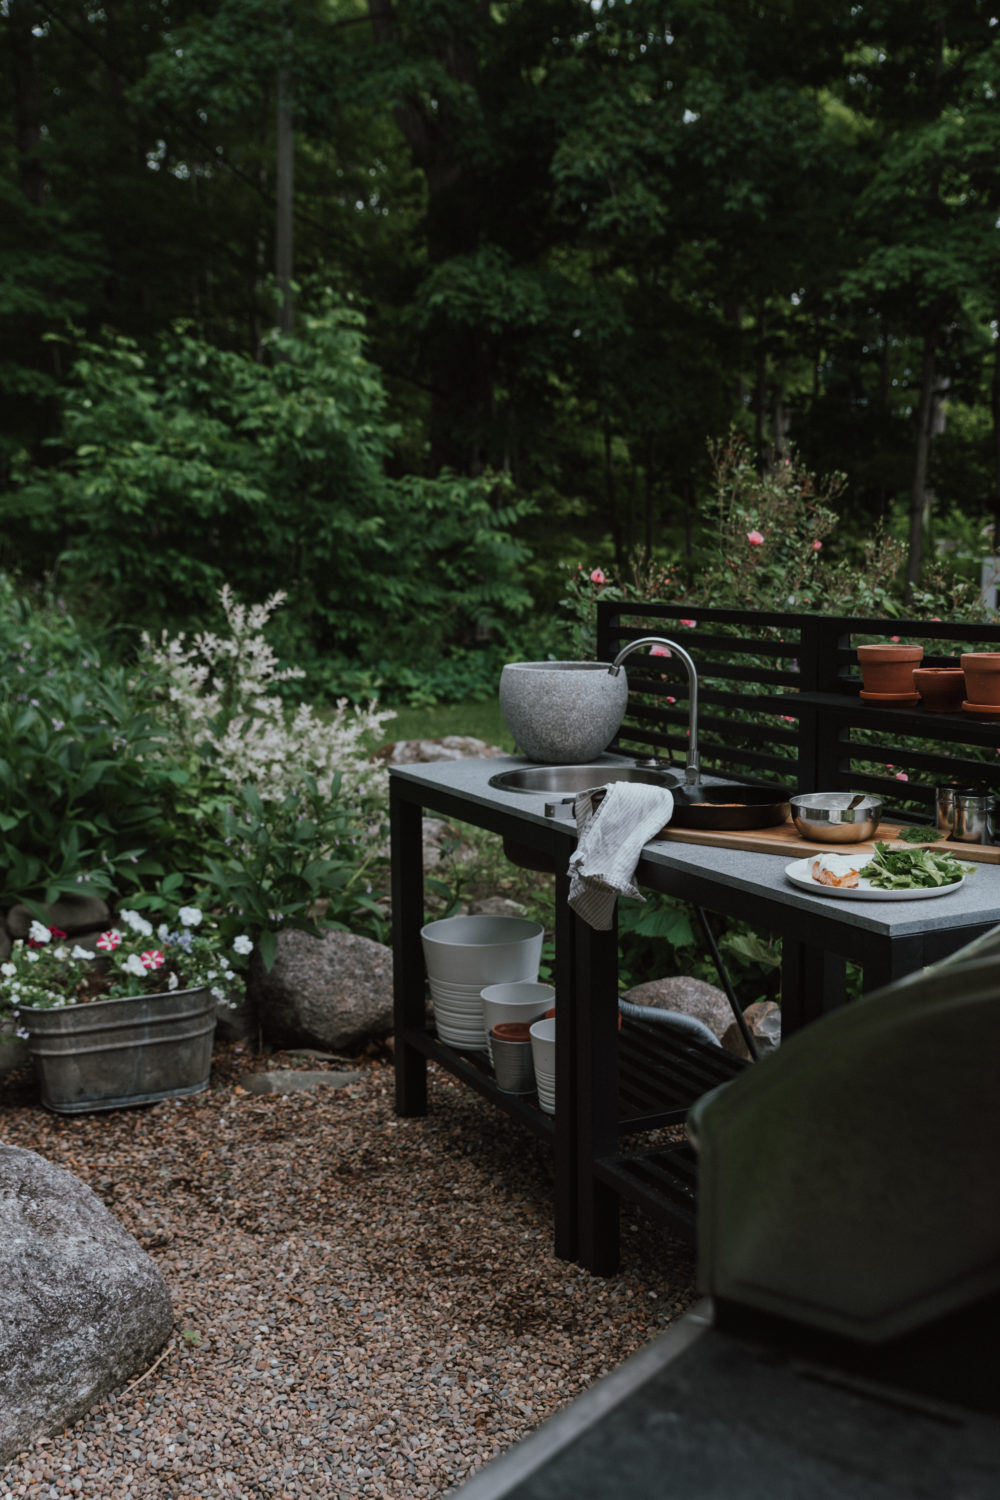 The Wild Decoelis | Out door Kitchen By Hauser on pea stone patio in the middle of a garden